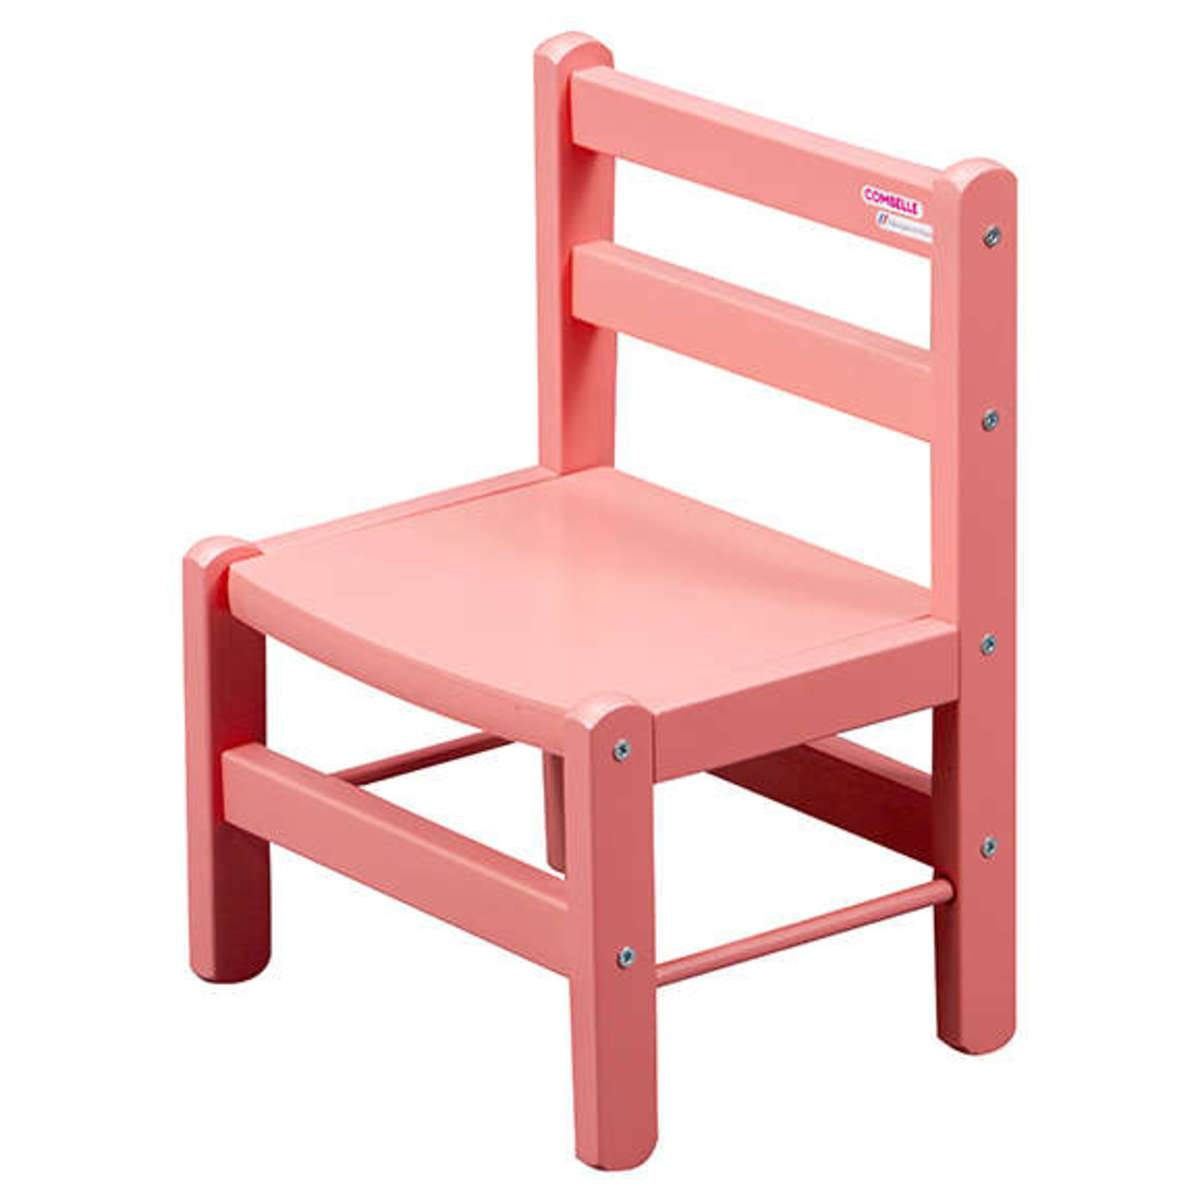 Combelle Chaise Enfant - Rose